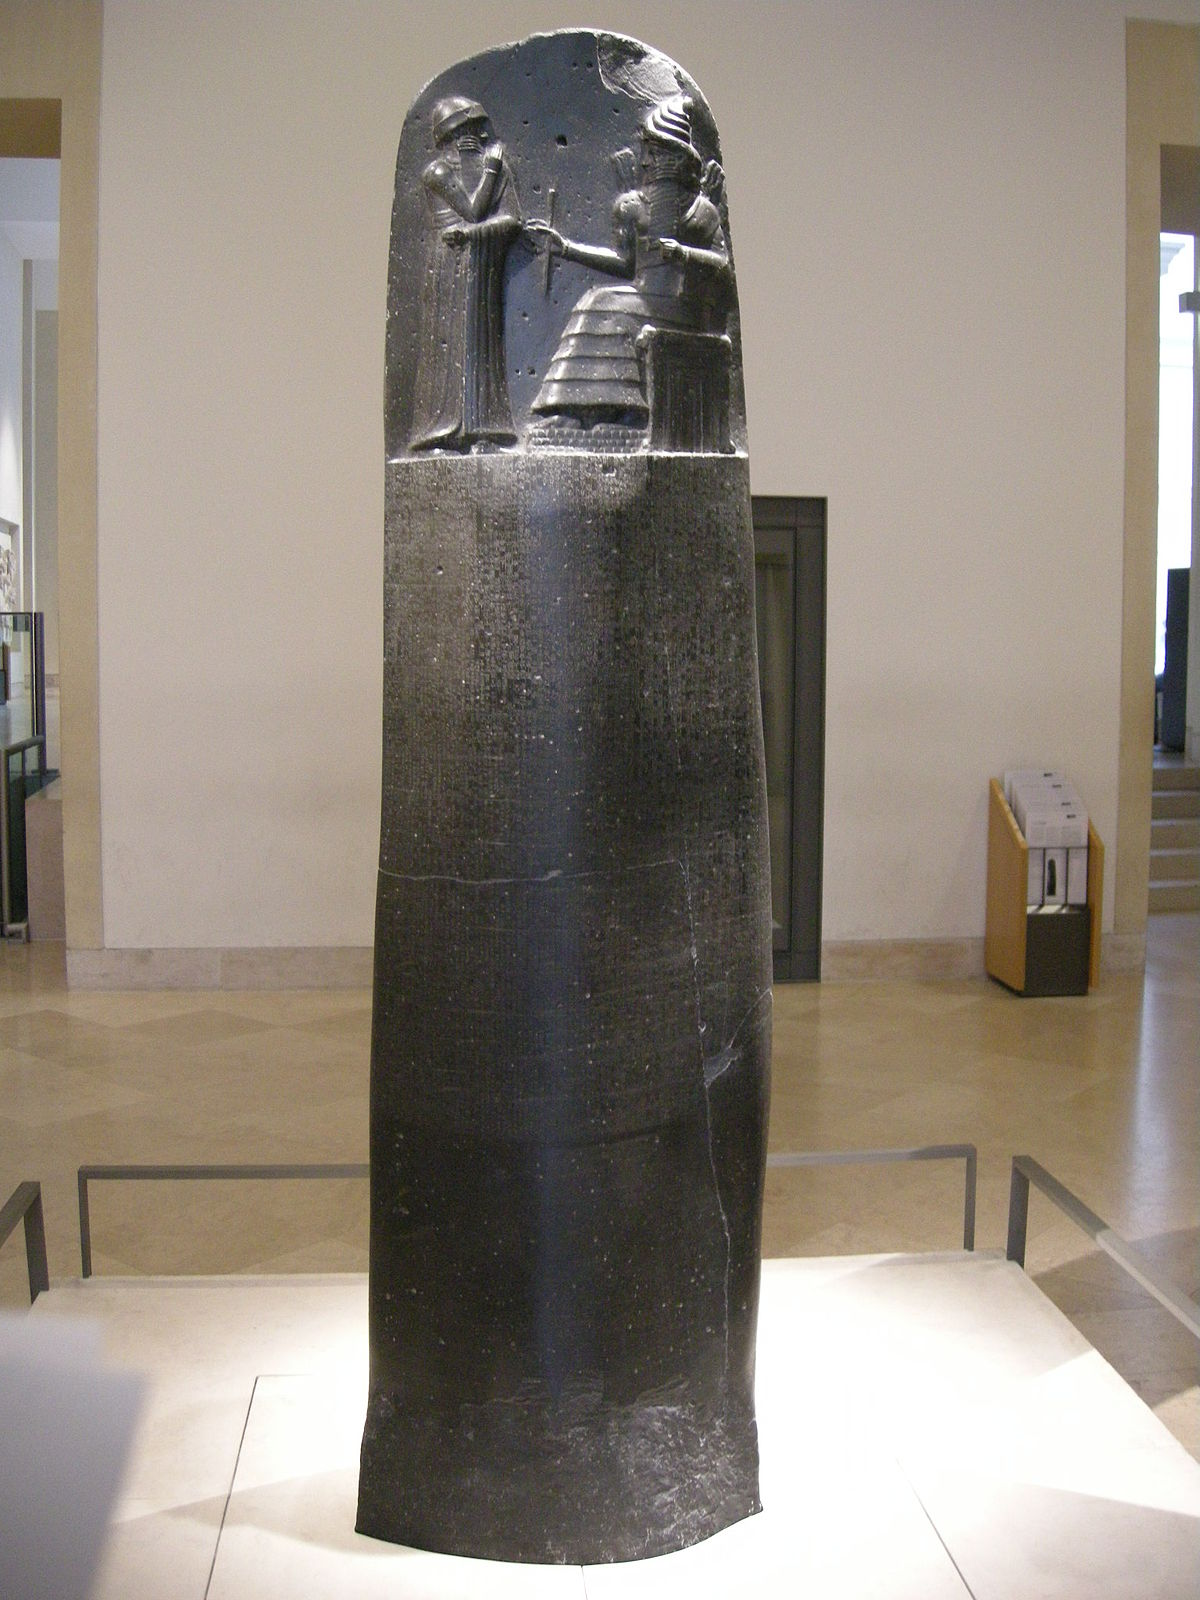 Codice di hammurabi wikipedia for Arredo ingross 3 dove si trova